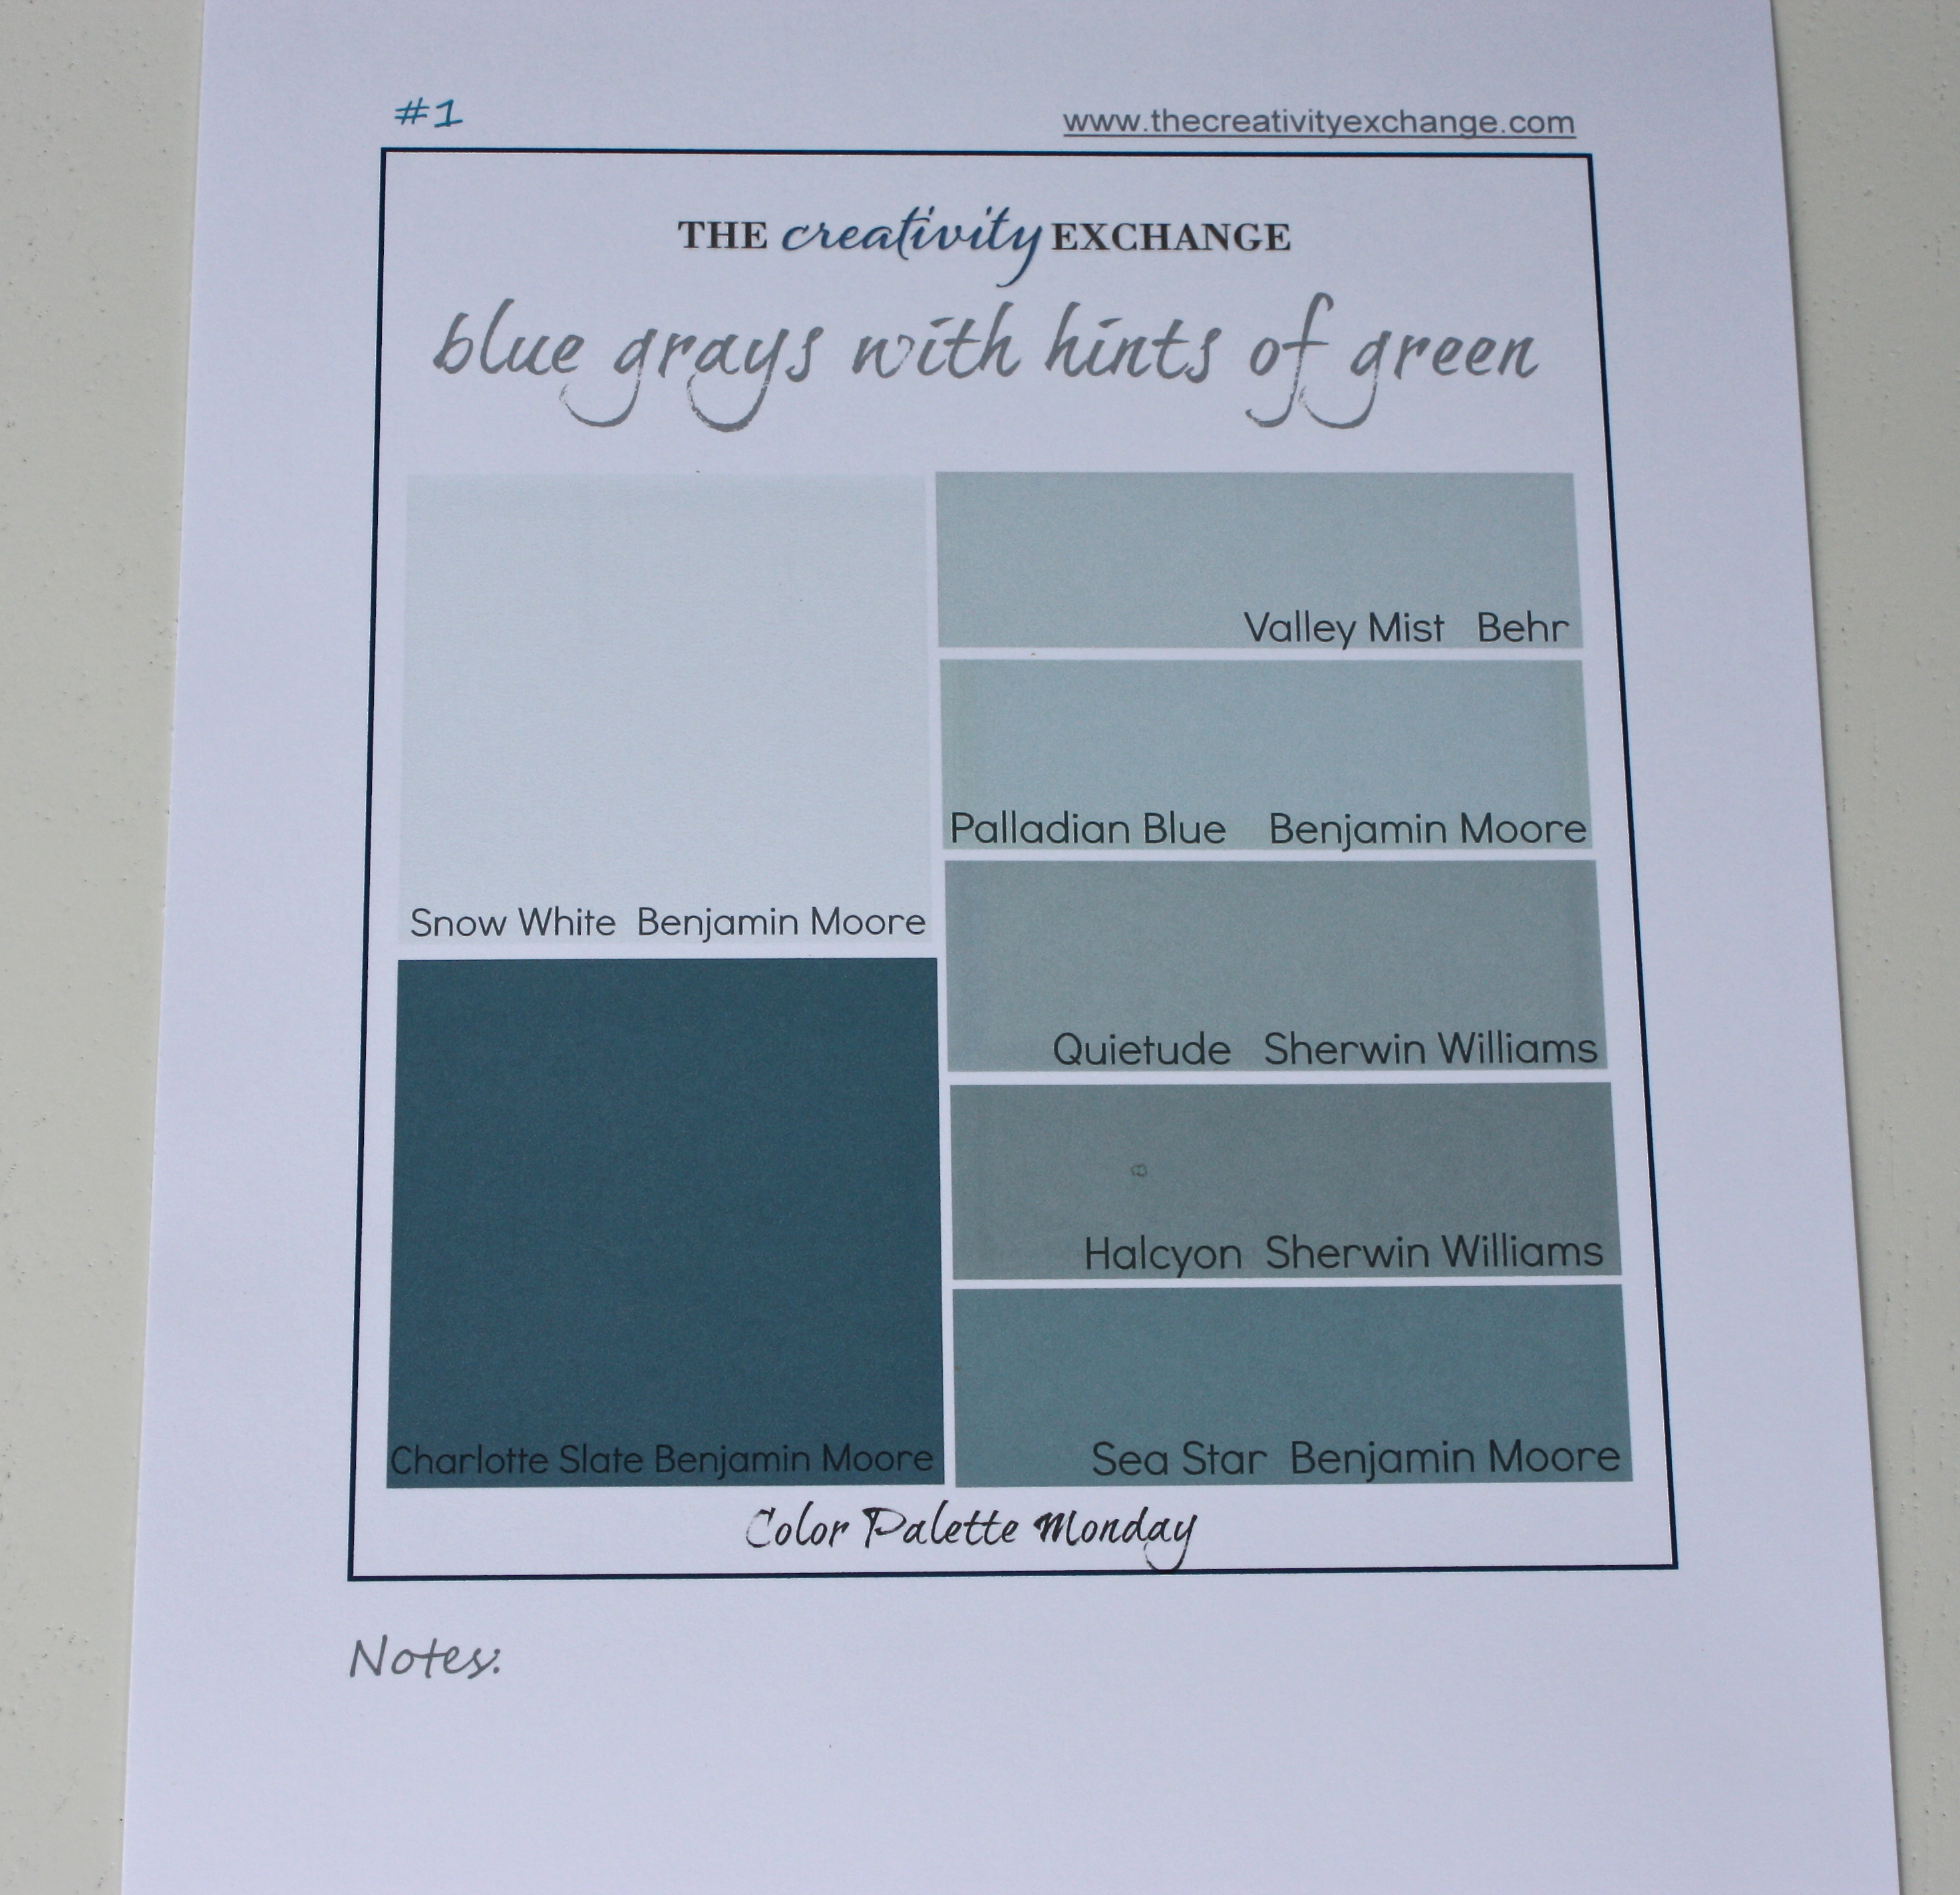 Benjamin moore palladian blue bathroom - Printable Color Palette Of Great Gray Blue Greens Color Palette Monday The